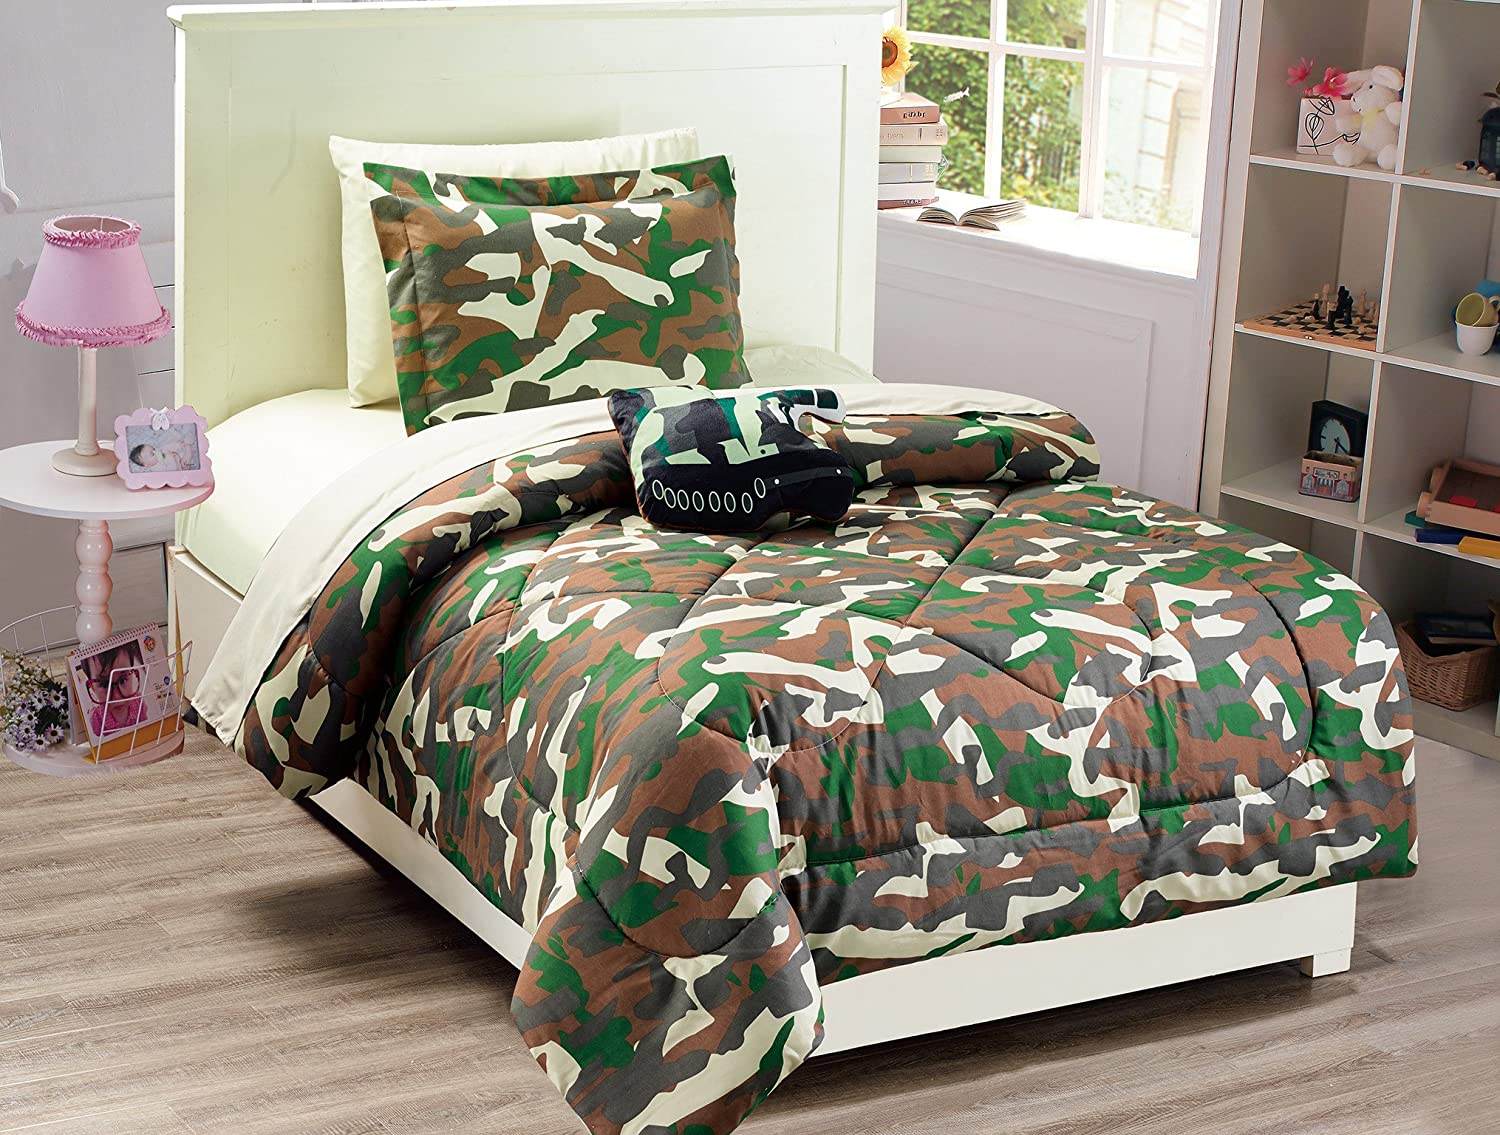 Mk Collection 6 PC Kids/Teens Twin Size Tank Army Camouflage Military Green Brown Beige Light Brown Comforter And Sheet Set With Furry Buddy Included New COMIN18JU062009